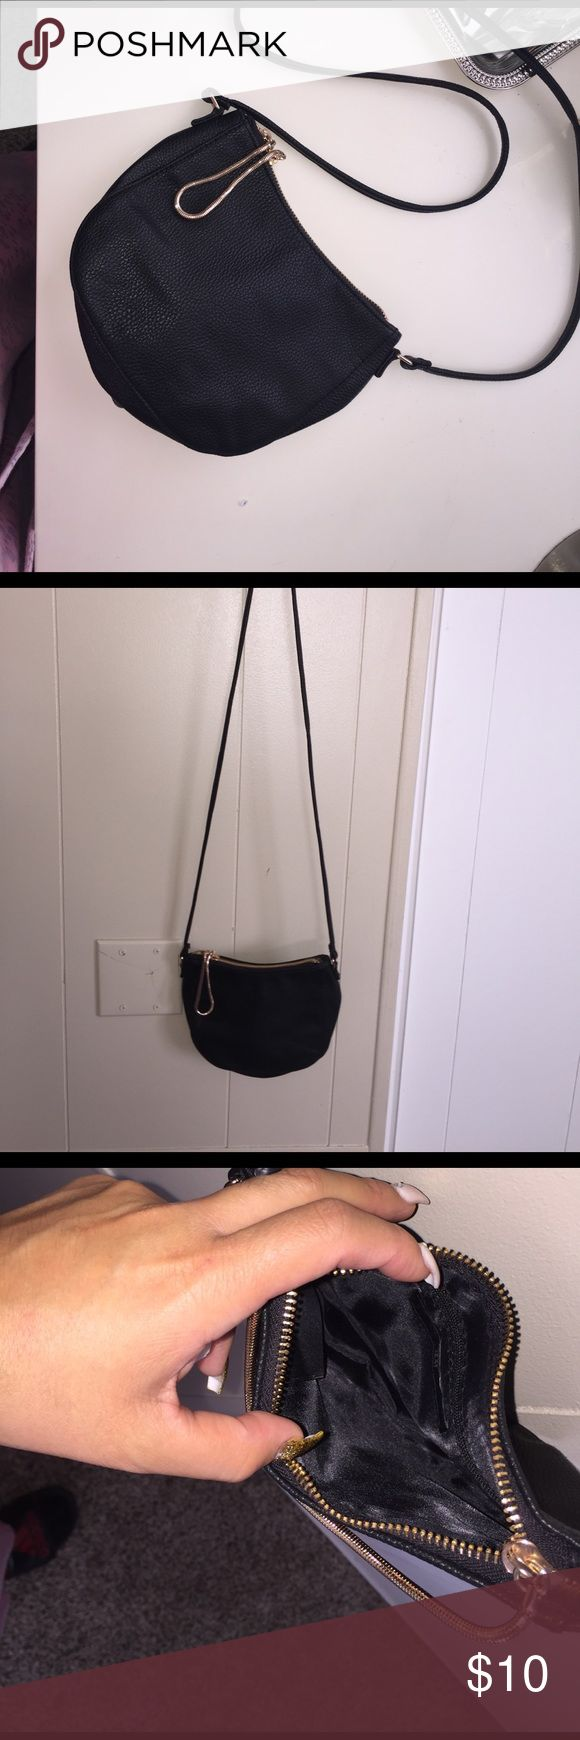 Small H&M purse Black &a gold  H&M purse. Small bag with a pretty zipper used once not for me H&M Bags Satchels